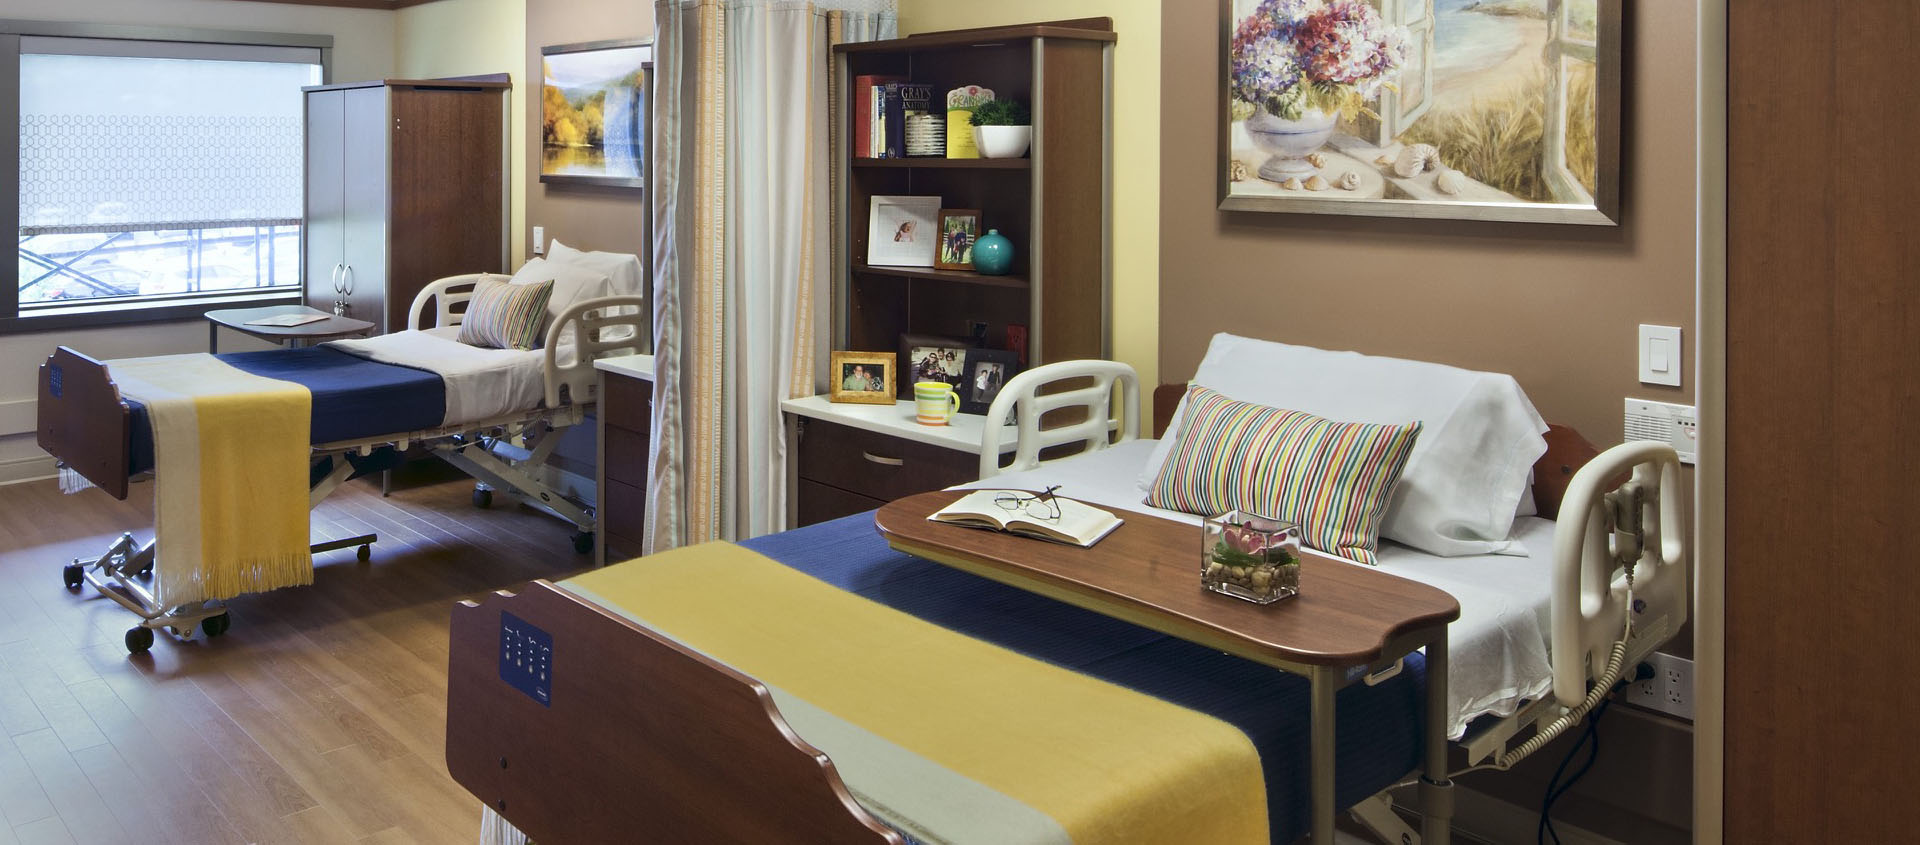 Parker Jewish Assisted Living Facility > image